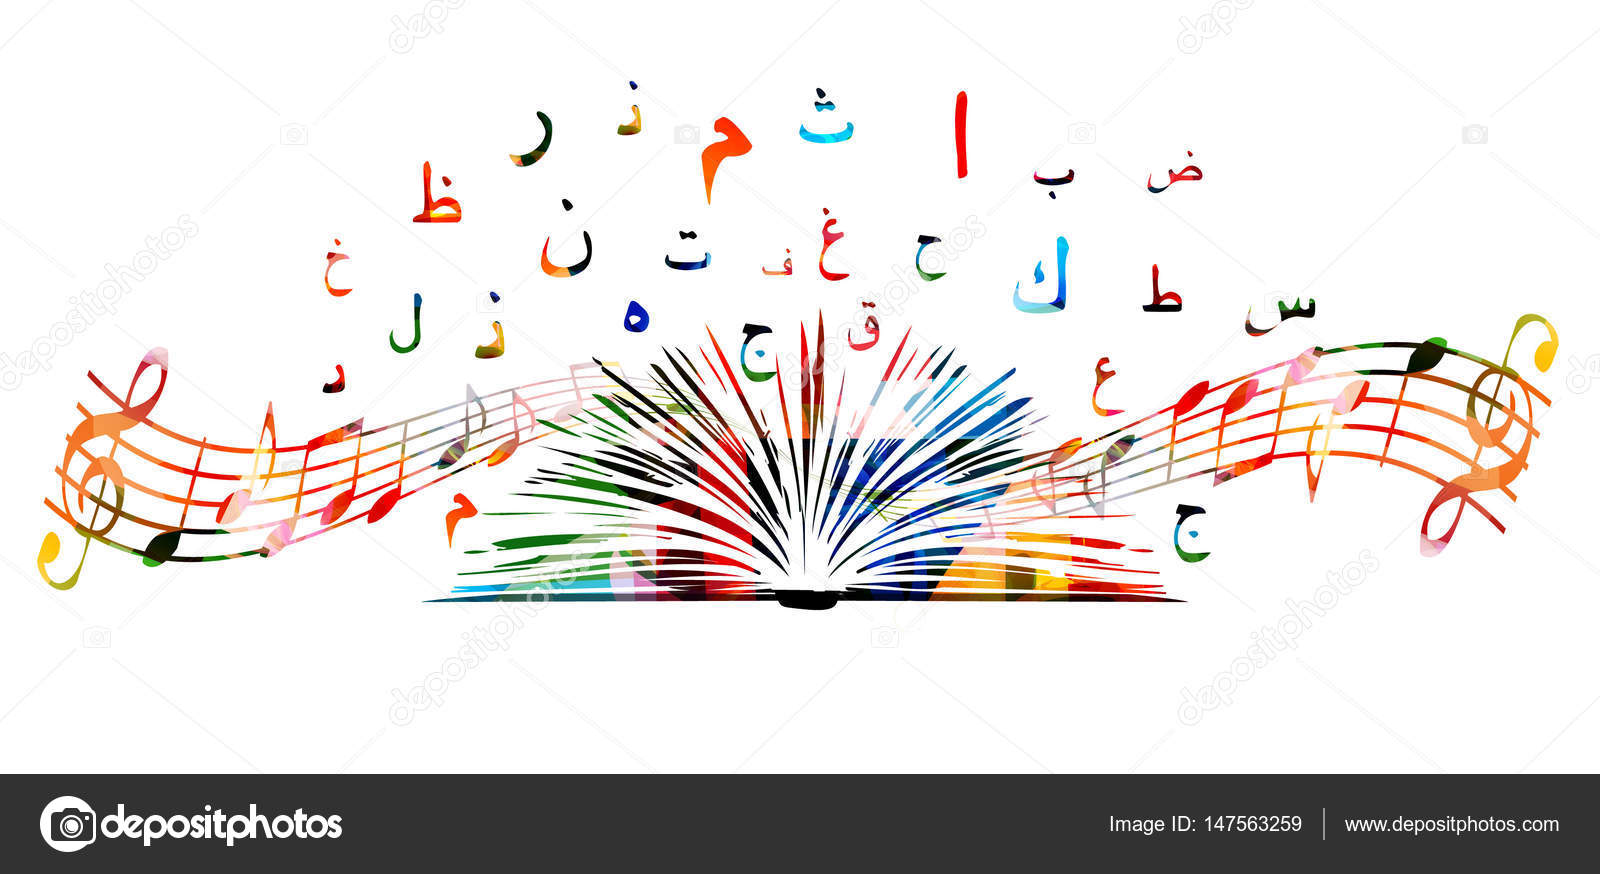 Poster design notes -  Music Notes And Arabic Islamic Calligraphy Symbols Isolated Arabic Alphabet Text With Book Background Vector Illustration Design For Poster Brochure